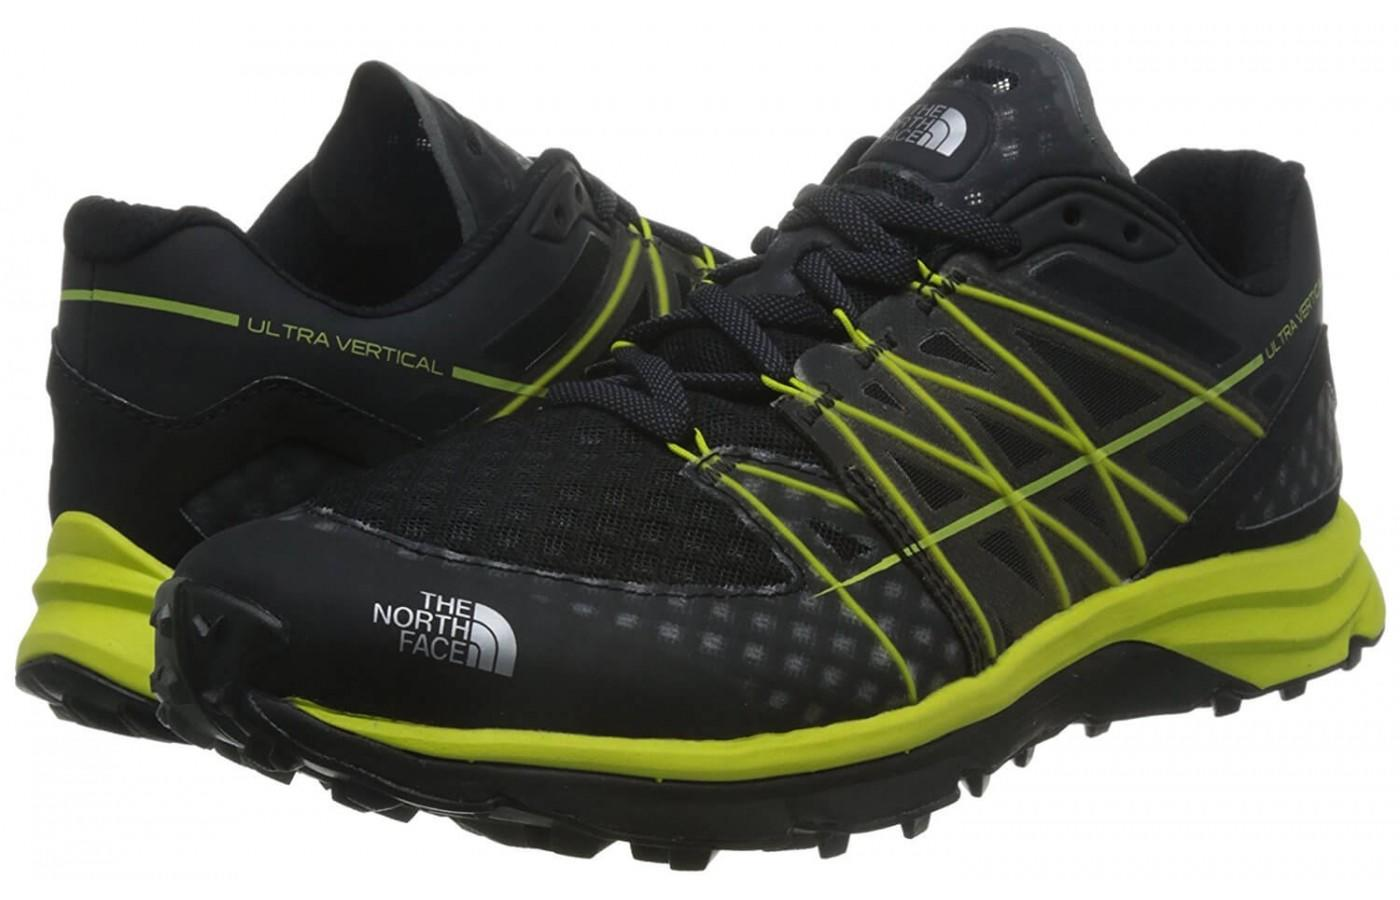 The North Face Ultra Vertical is great for trail running and mountain climbing